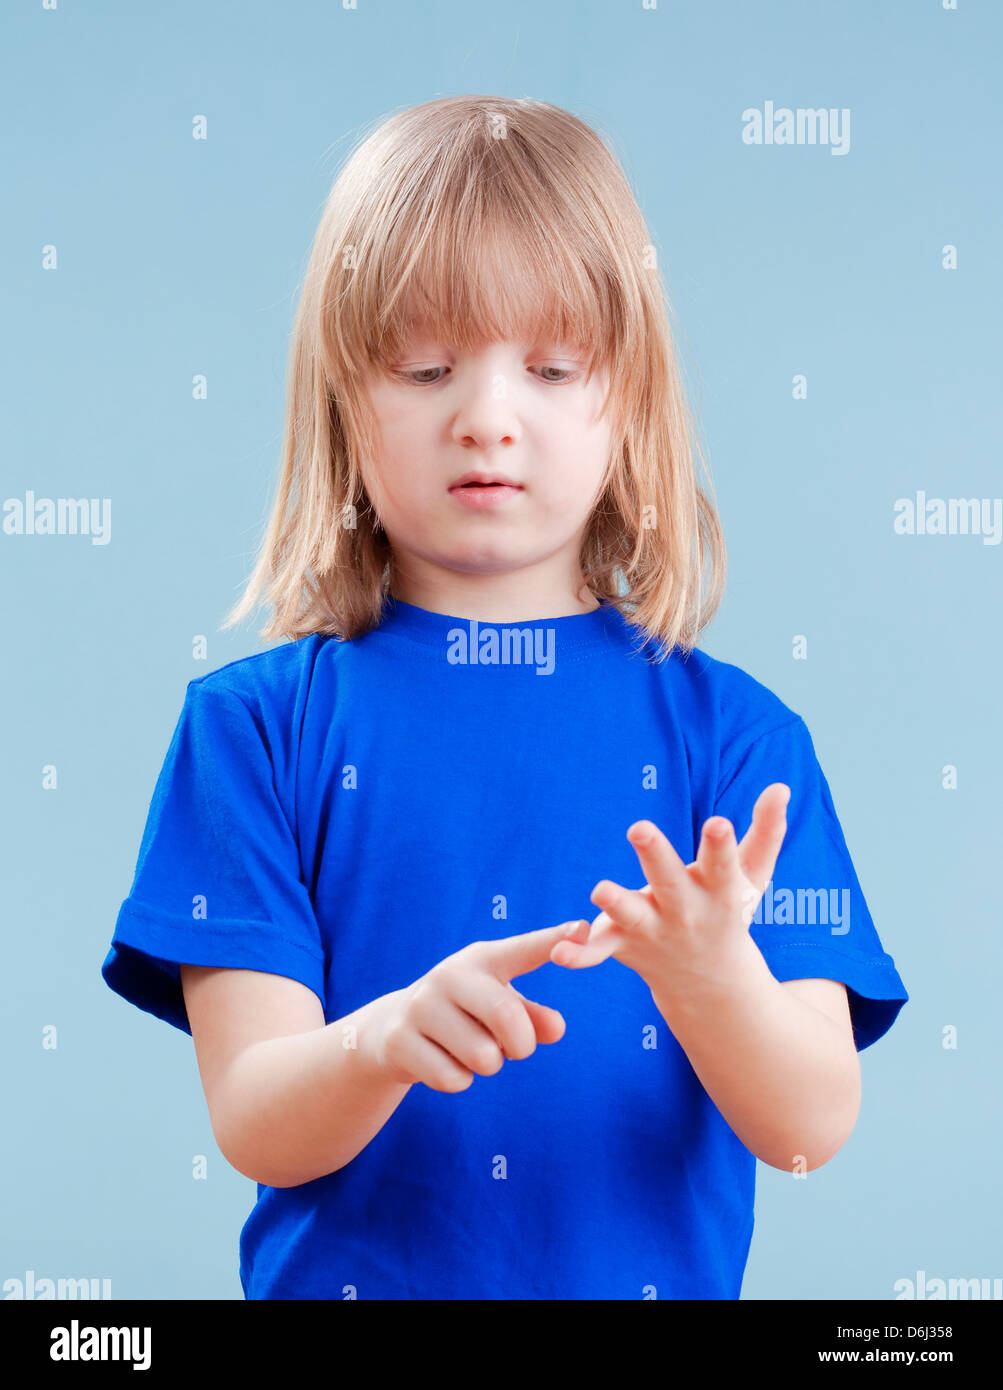 boy with long blond hair counting on fingers of his hand - isolated on blue - Stock Image